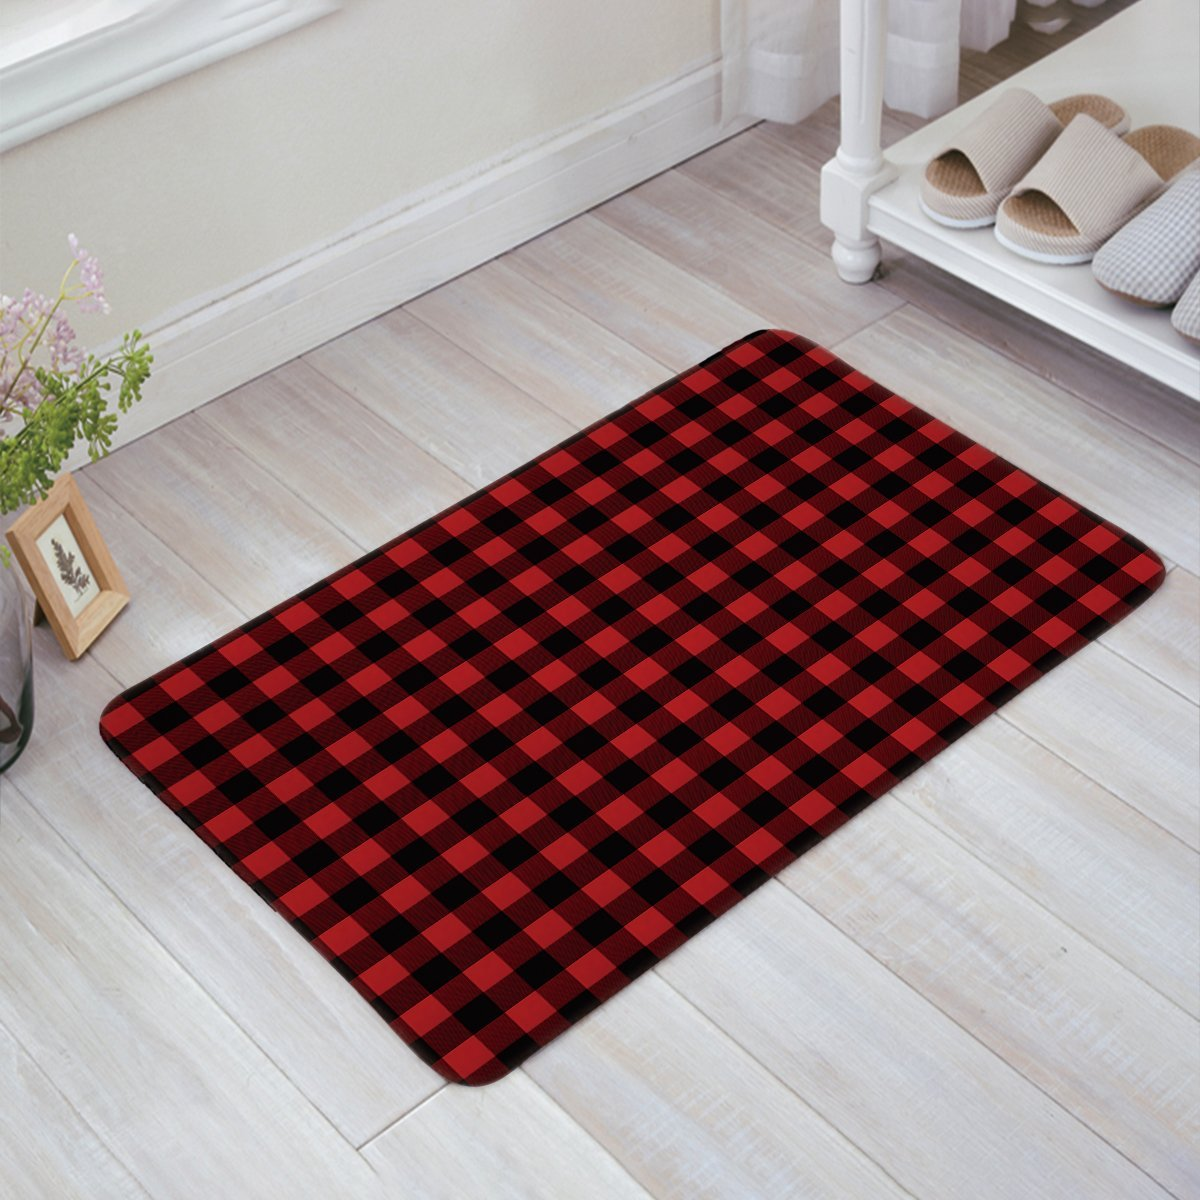 Charmhome Red Black Buffalo Check Plaid Pattern Doormat